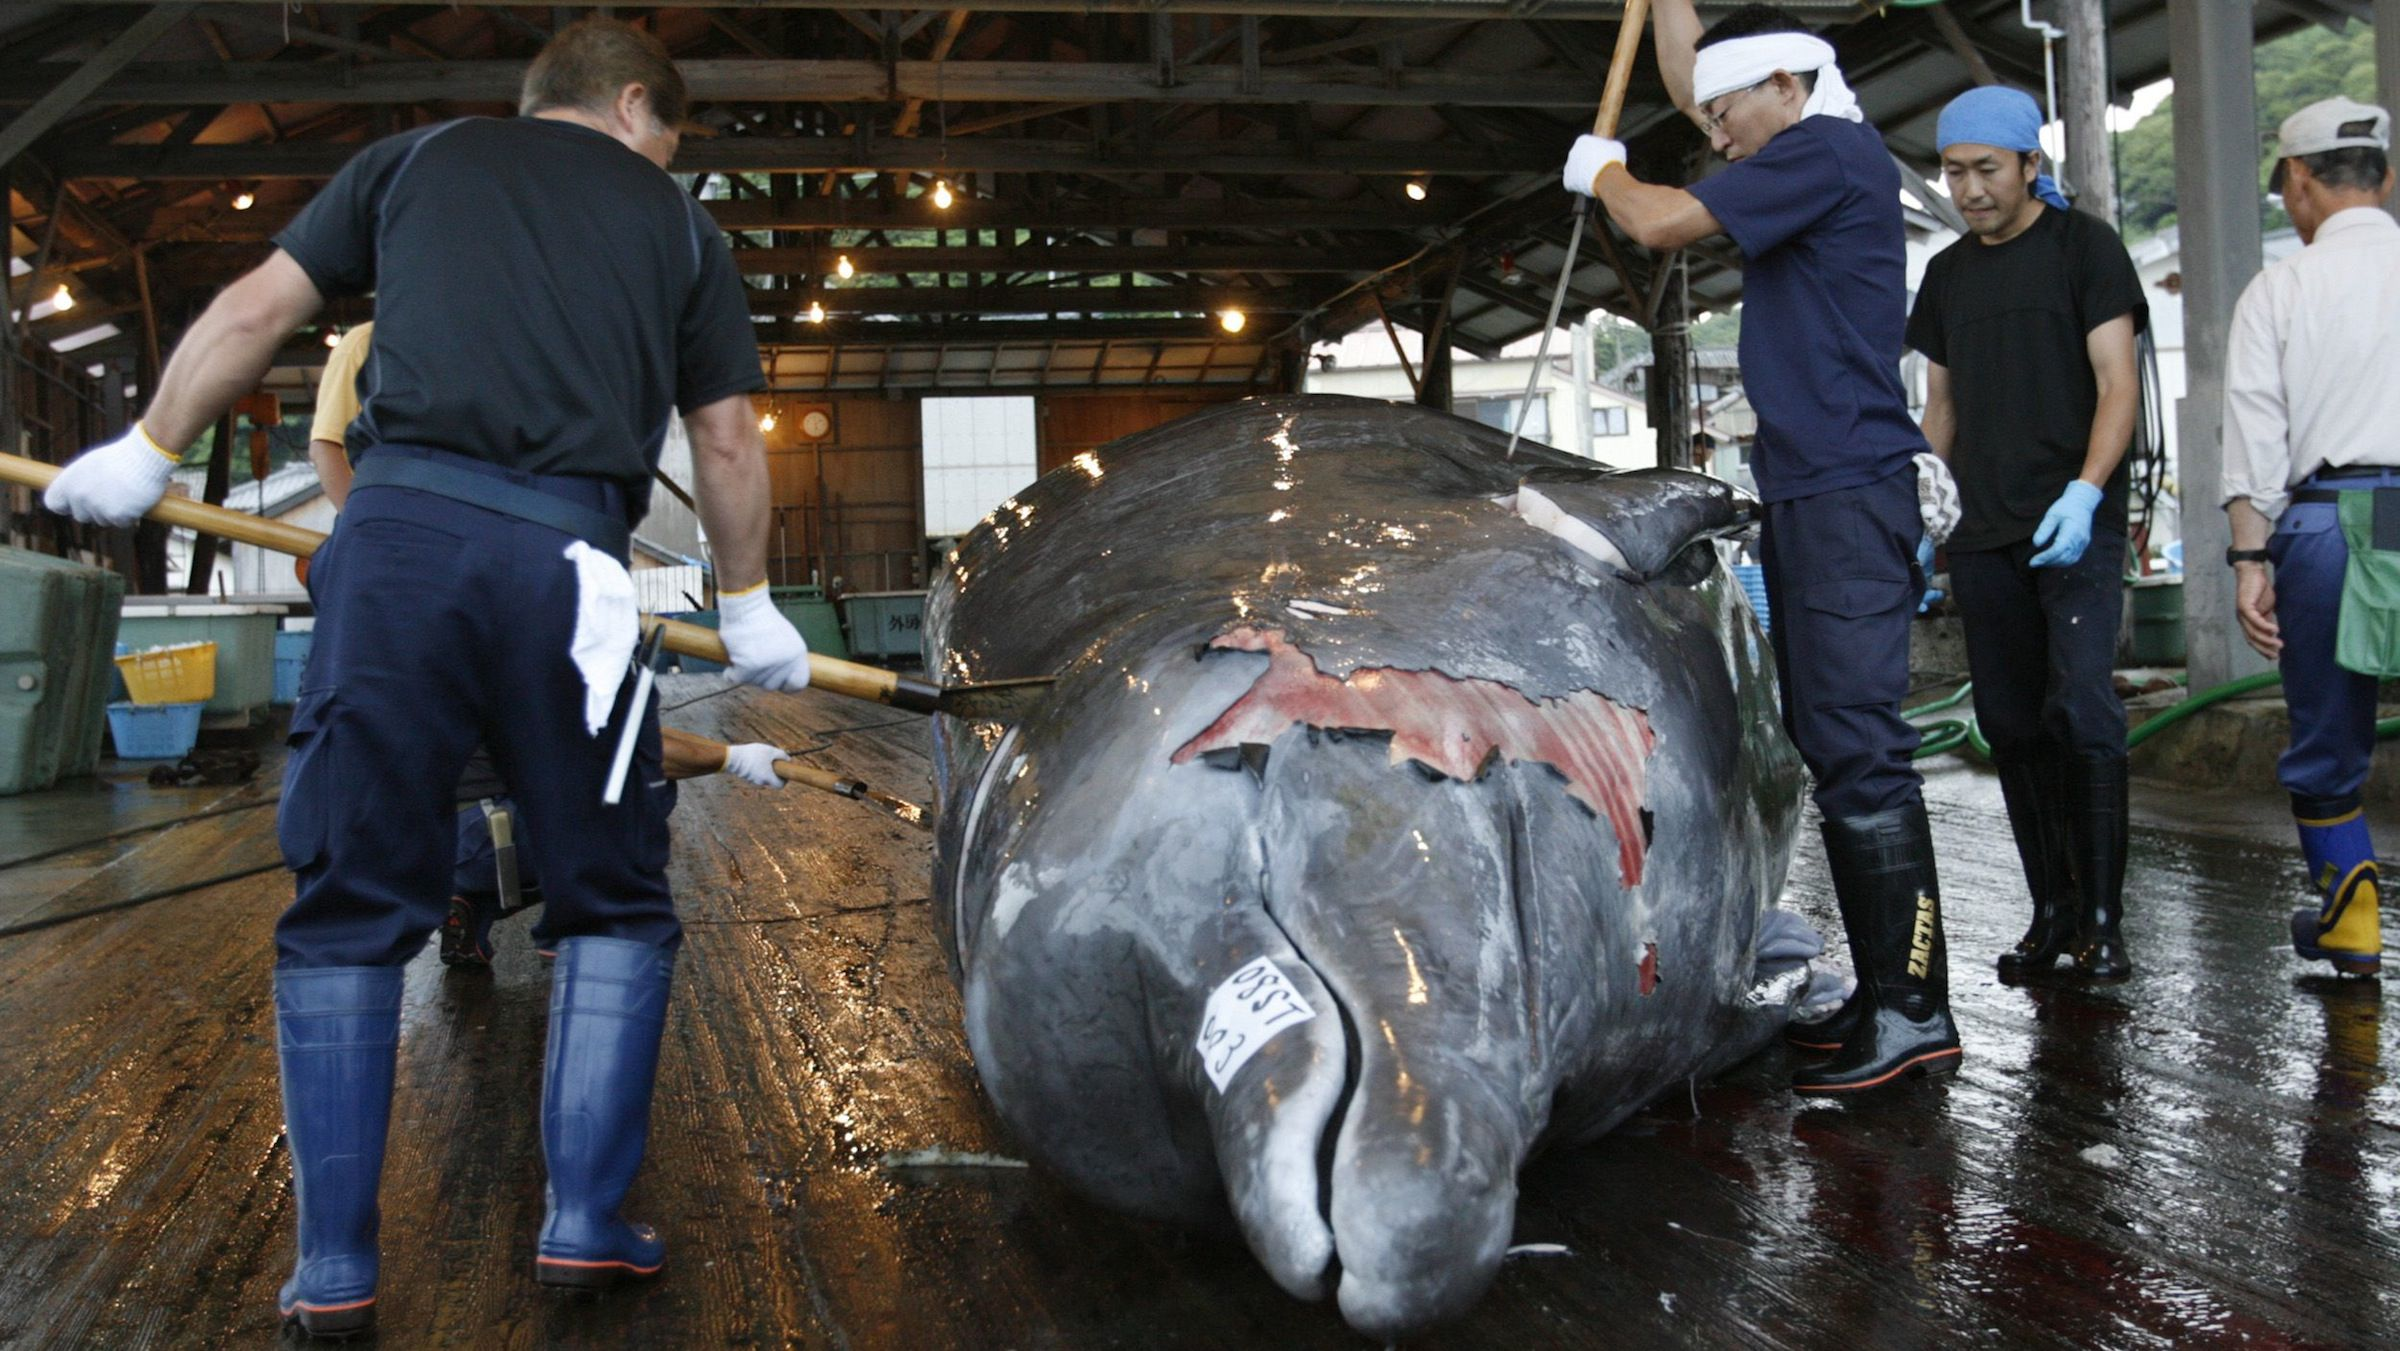 Workers butcher a Baird's Beaked whale at Wada port in Minamiboso, southeast of Tokyo, June 28, 2008. Whales emerged the big losers as a weeklong International Whaling Commission meeting wrapped up in Chile on Friday, conservation groups said after anti-whaling nations failed to halt No. 1 hunter Japan. REUTERS/Toru Hanai (JAPAN) - RTX7F3C